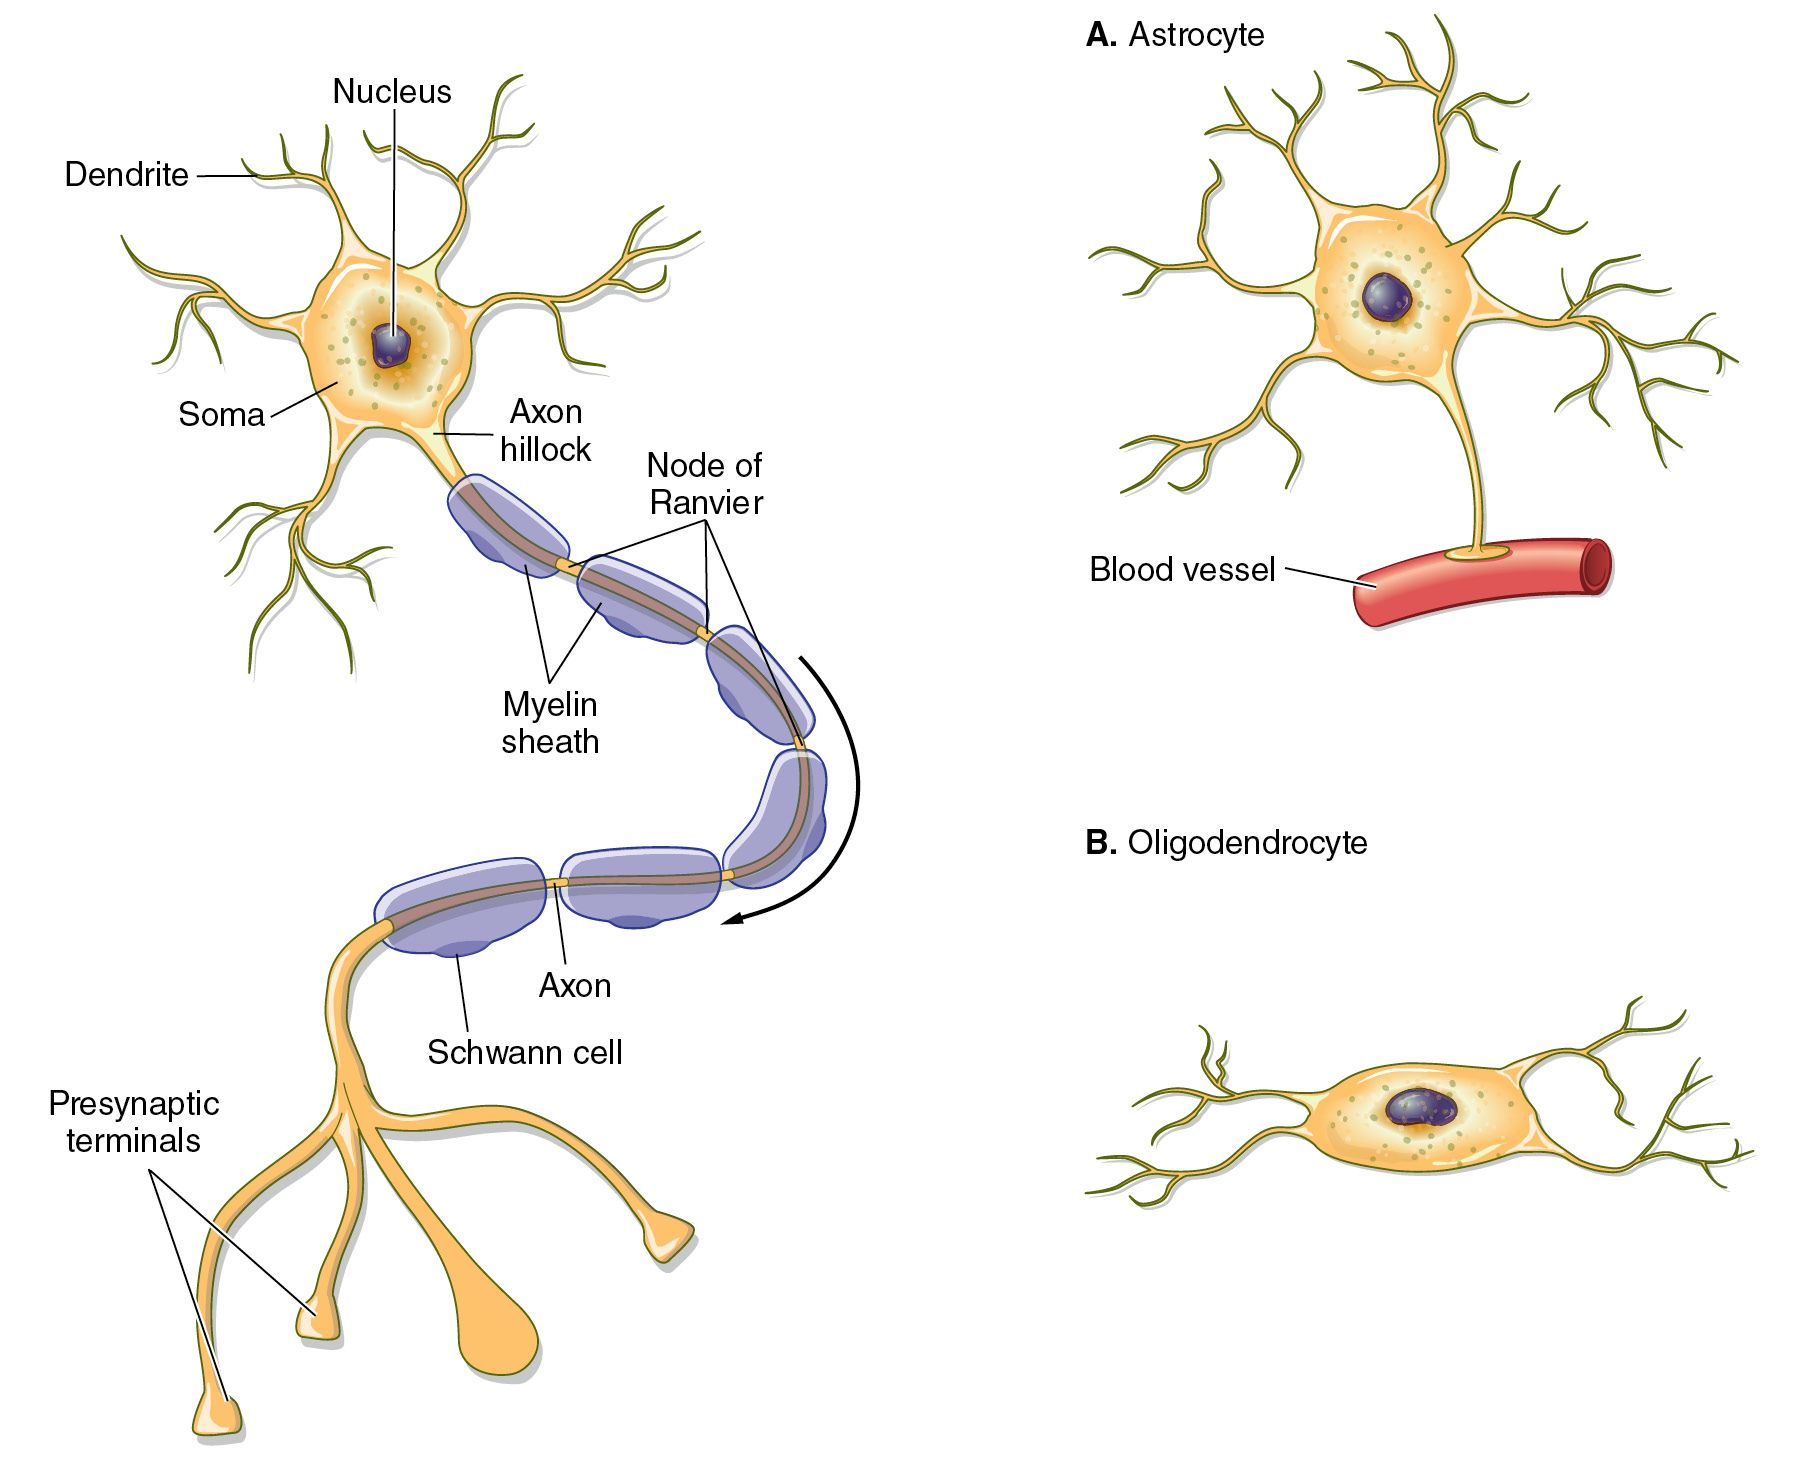 Illustrations Of A Typical Neuron And The Glial Cells Astrocyte And Oligodendrocyte With Nucleus